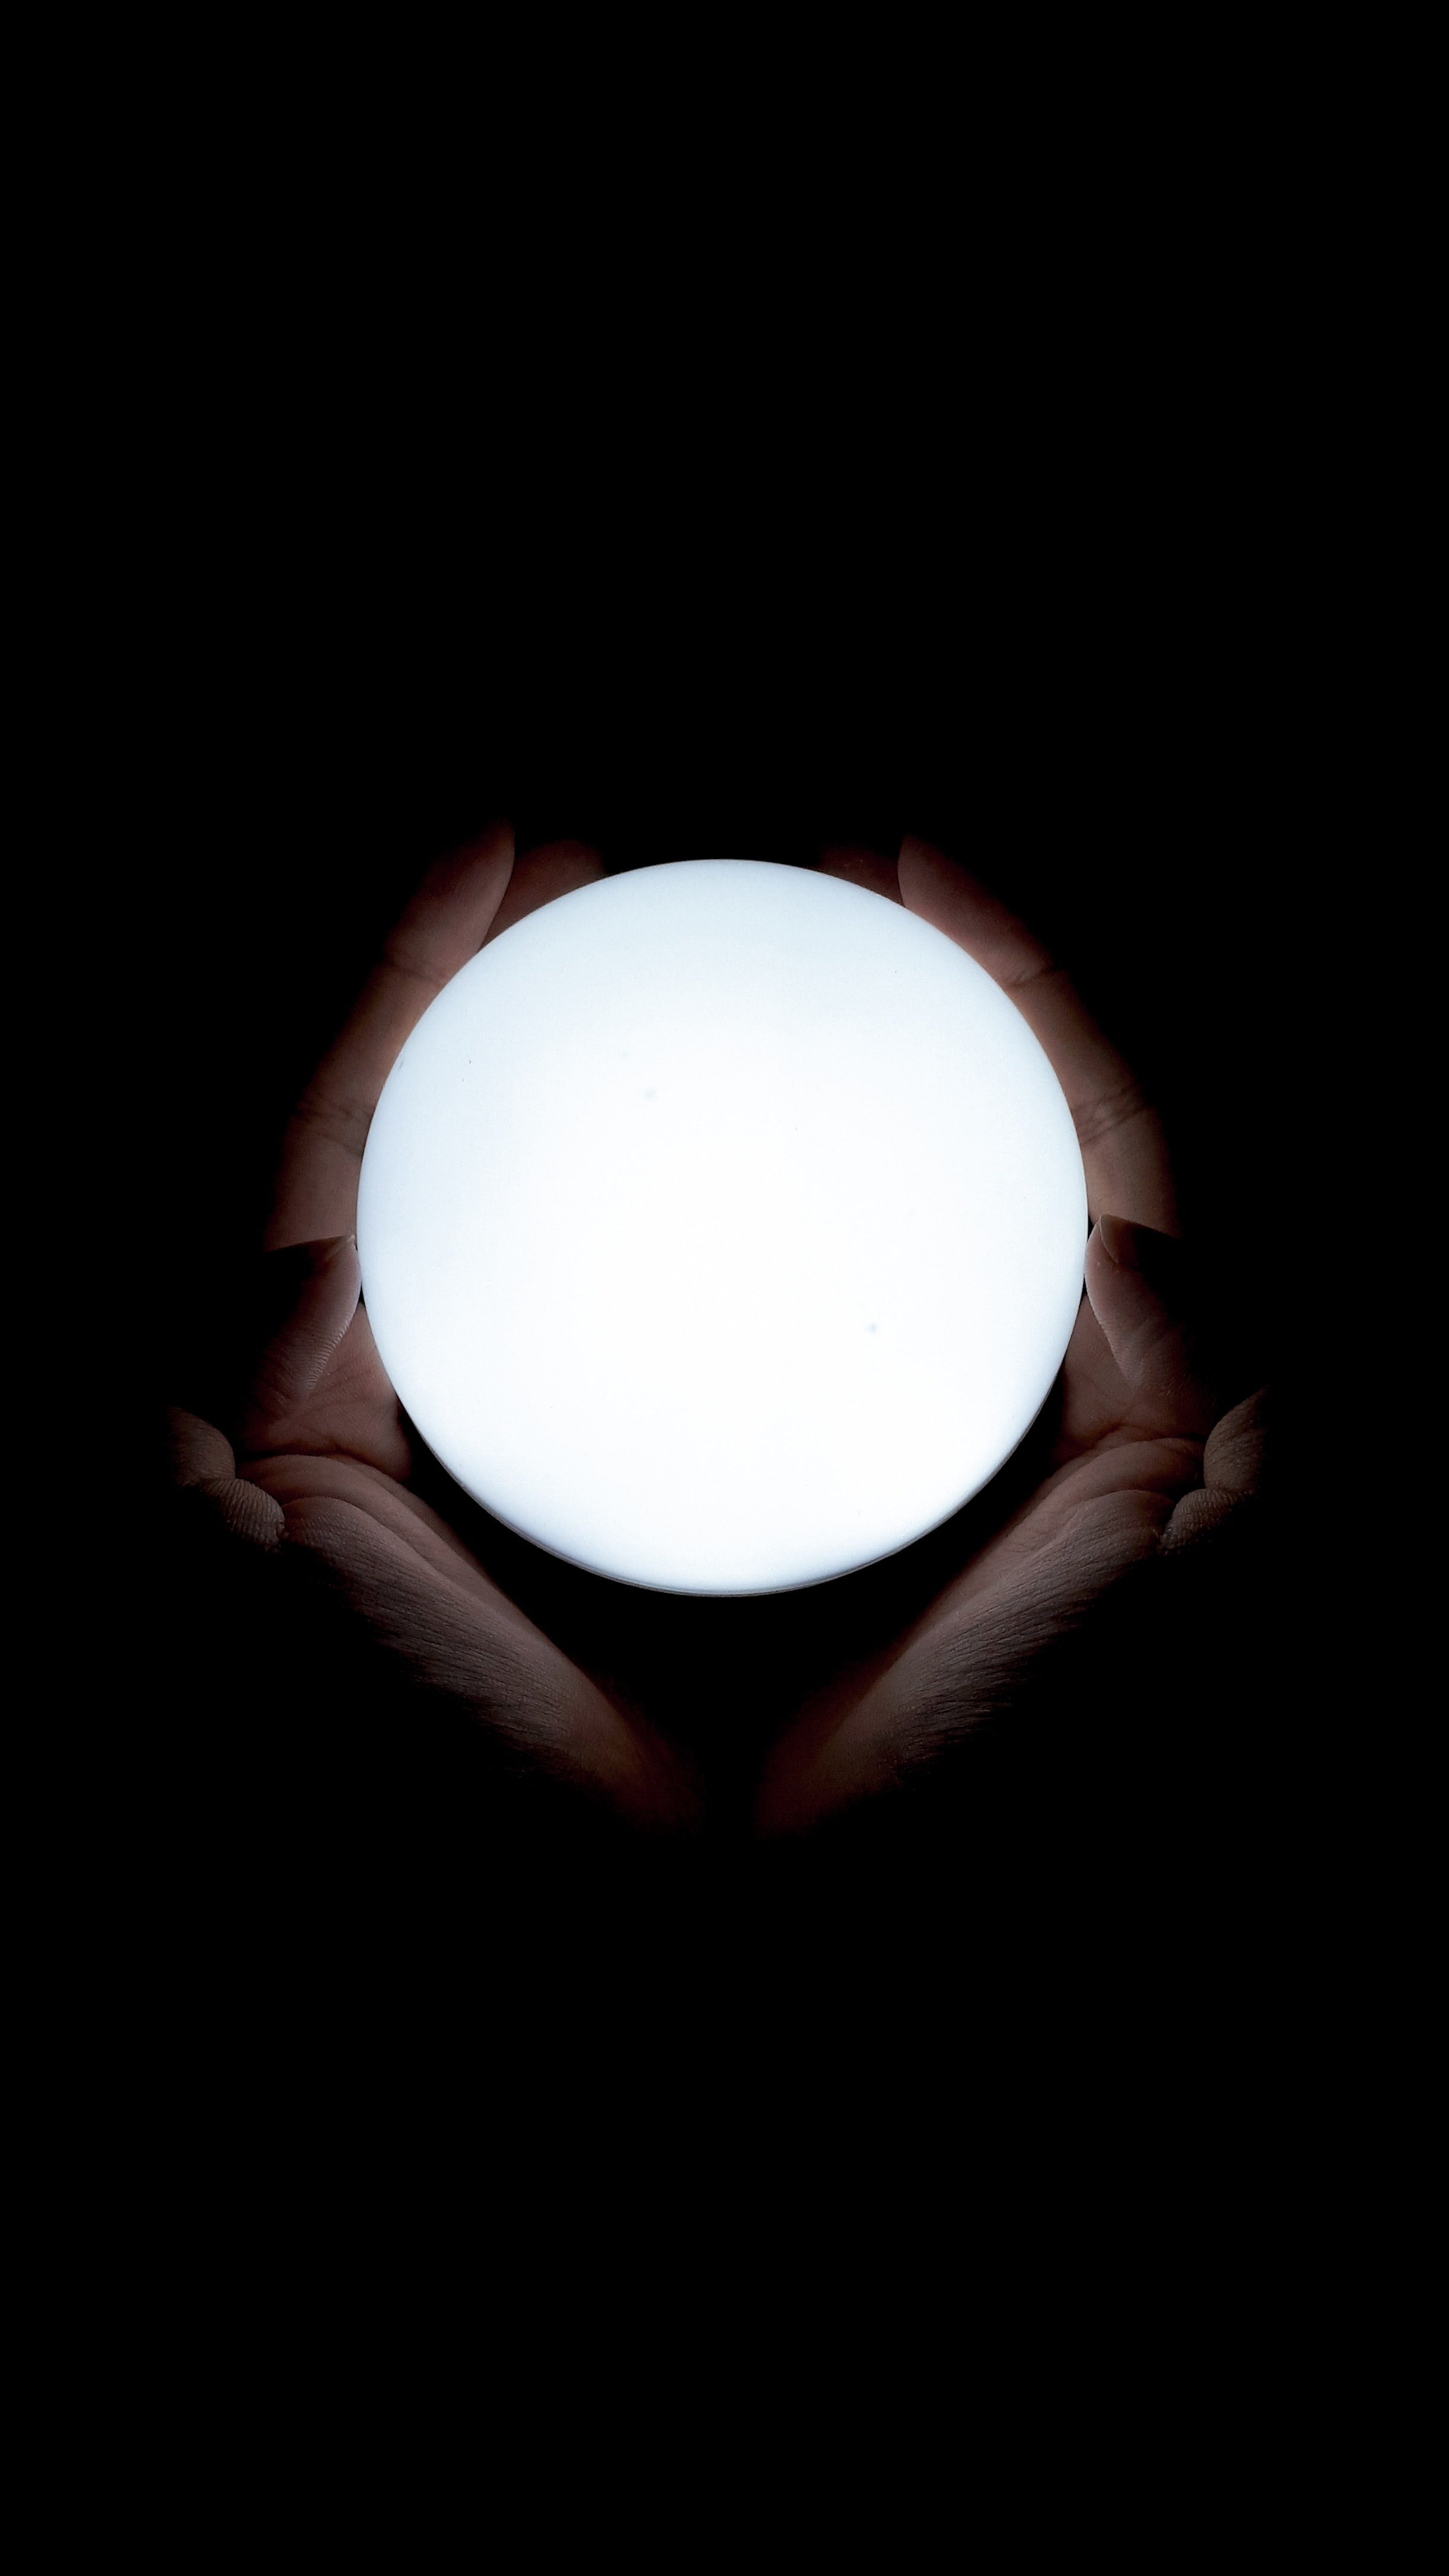 A shining orb with a dark background and hands holding the orb